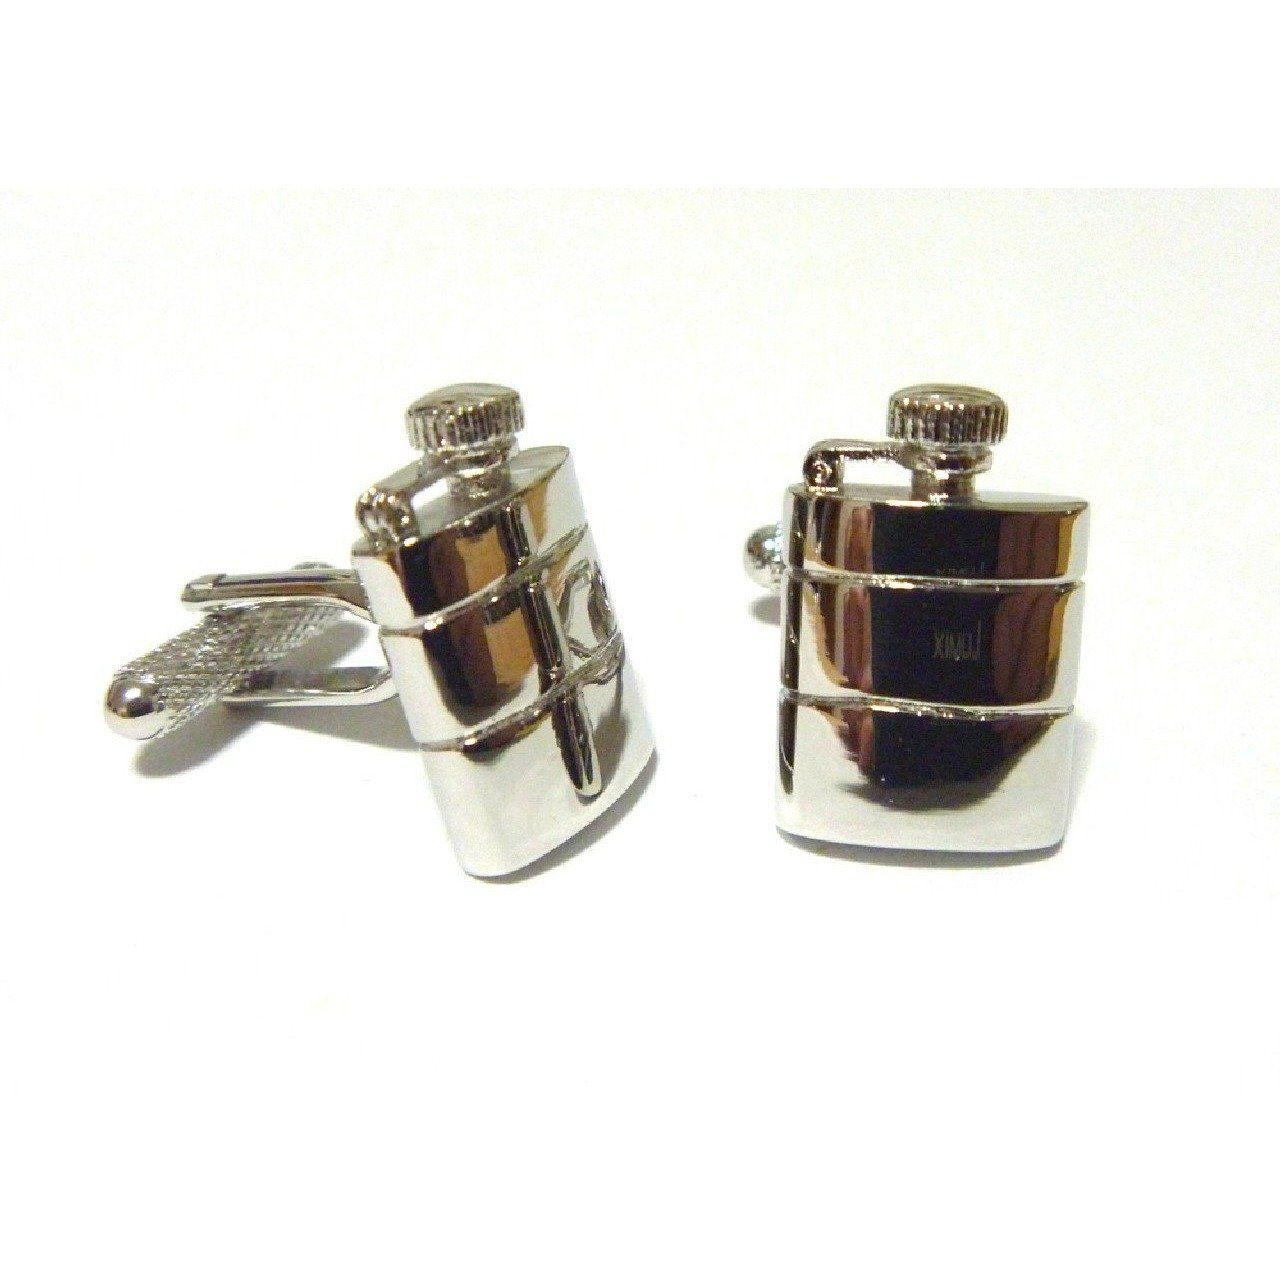 Hip Flask Cufflinks, Novelty Cufflinks, Cuffed.com.au, ZBC1965, $38.50